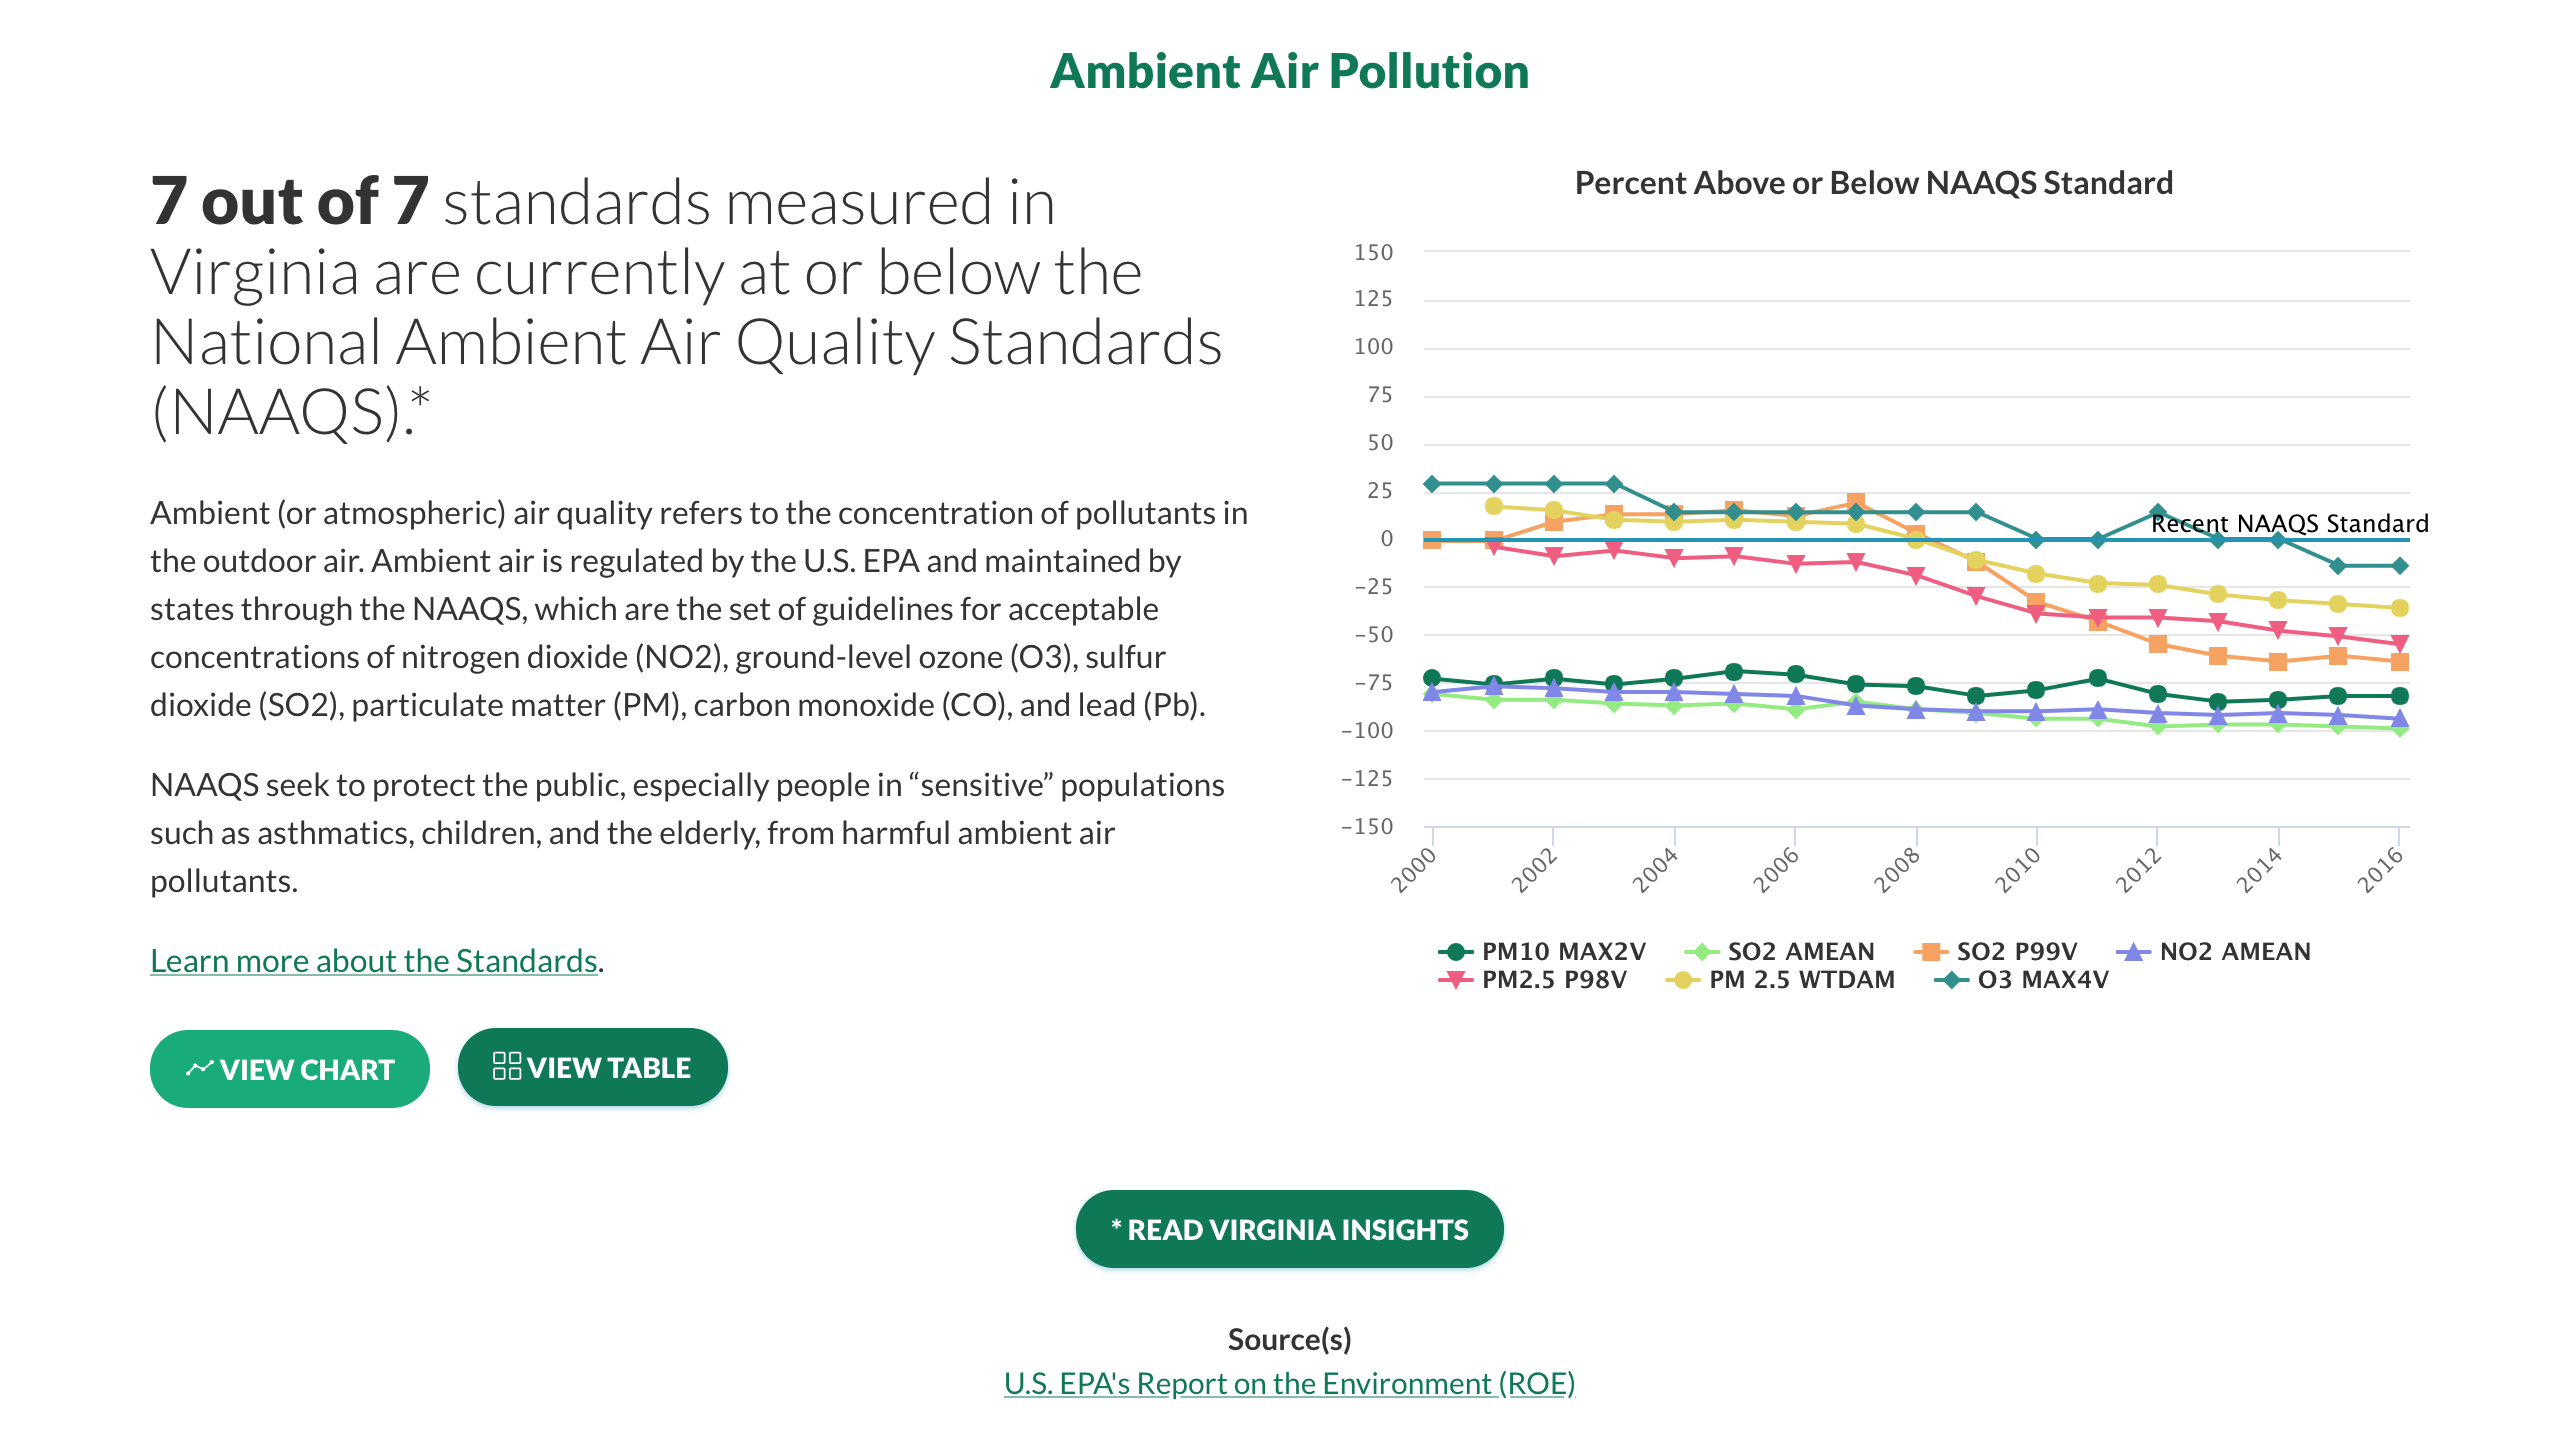 Virginia's Ambient Air pollution graph